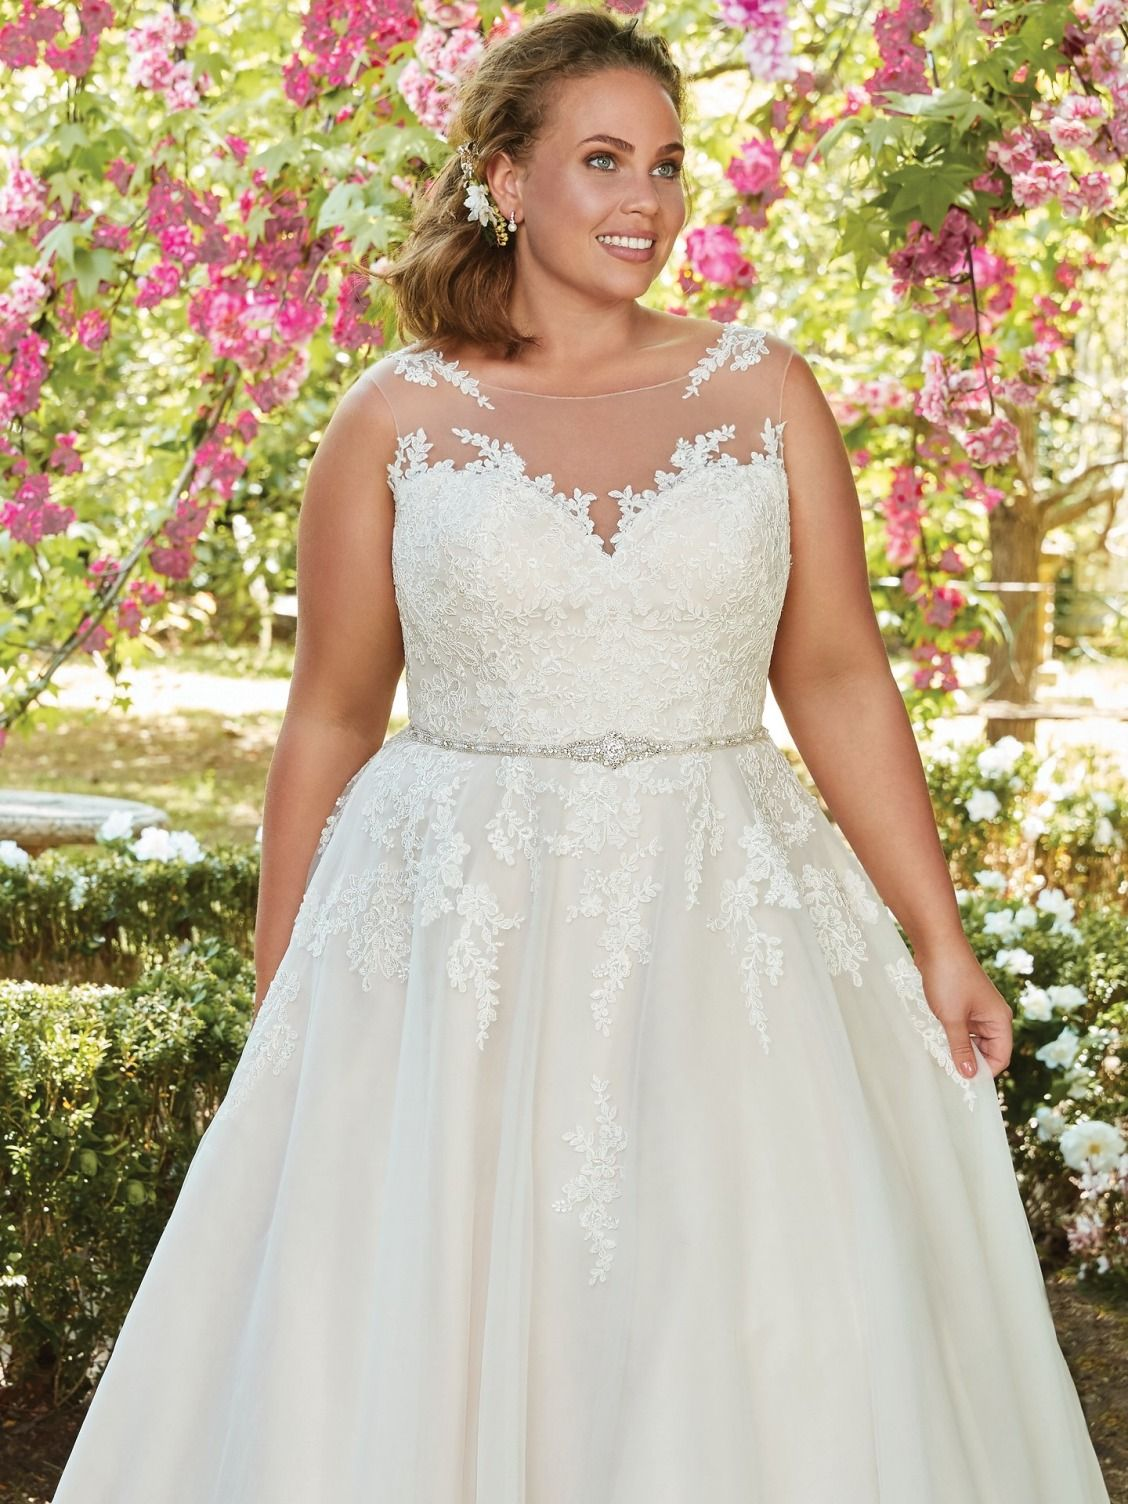 5e8550eab4 Plus Size Wedding Dresses by Maggie Sottero -Rebecca Ingram. OLIVIA -  Rebecca Ingram. A lace bodice and illusion bateau neckline add romance and  enchantment ...